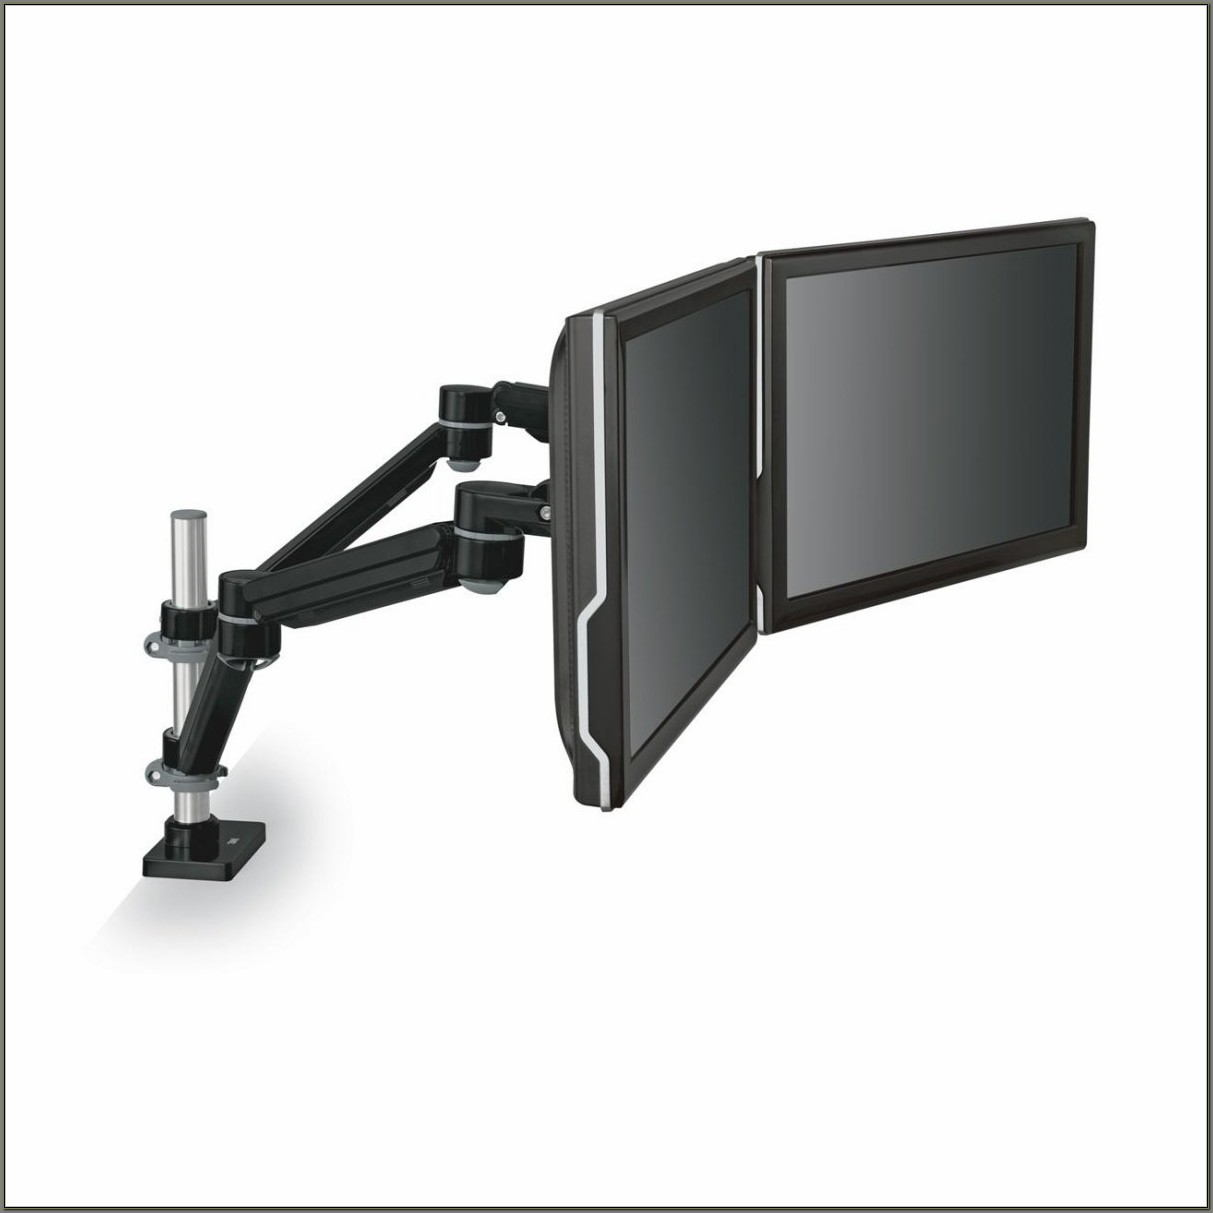 Dual Monitor Arm Desk Mount